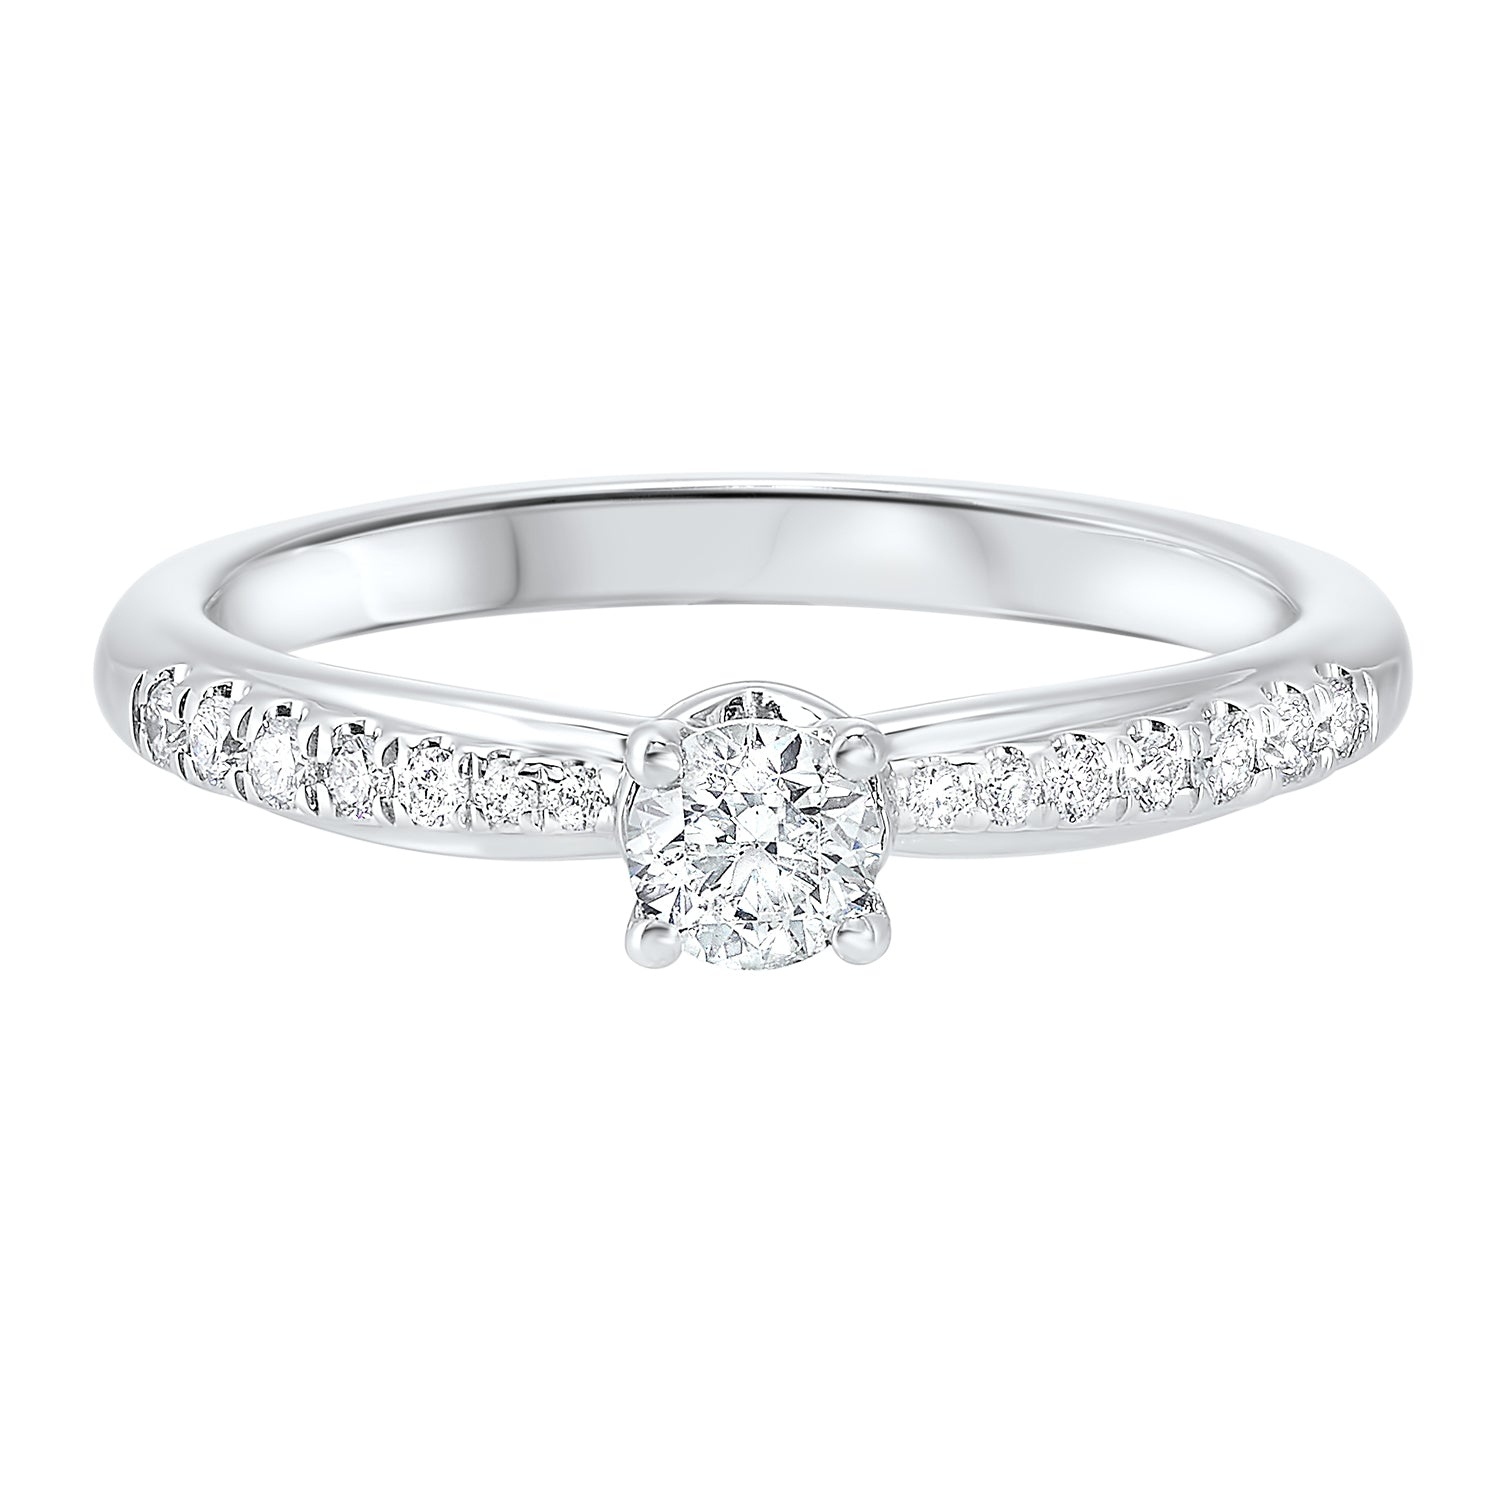 14K White Gold Shared Prong Bridal Ring (3/8 ct. tw.)